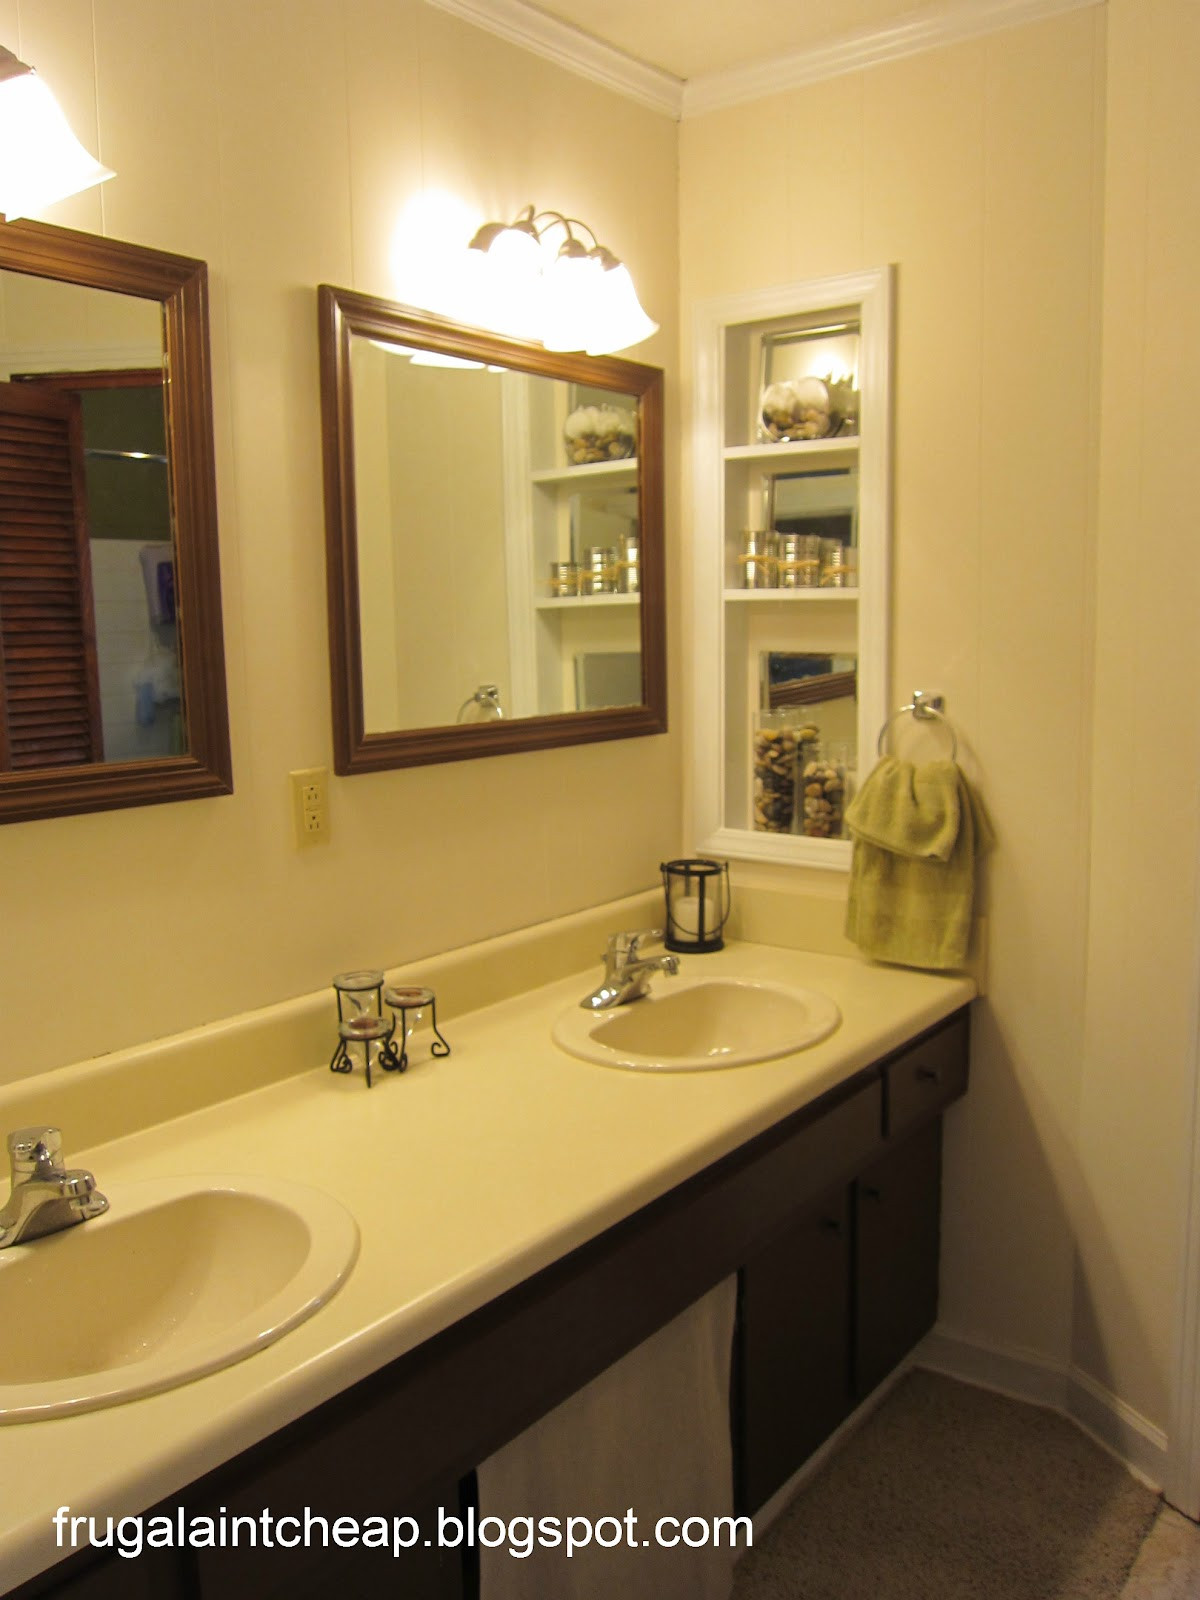 Best ideas about Cheap Bathroom Remodel DIY . Save or Pin Frugal Ain t Cheap Bathroom remodel From 1966 to 2012 Now.